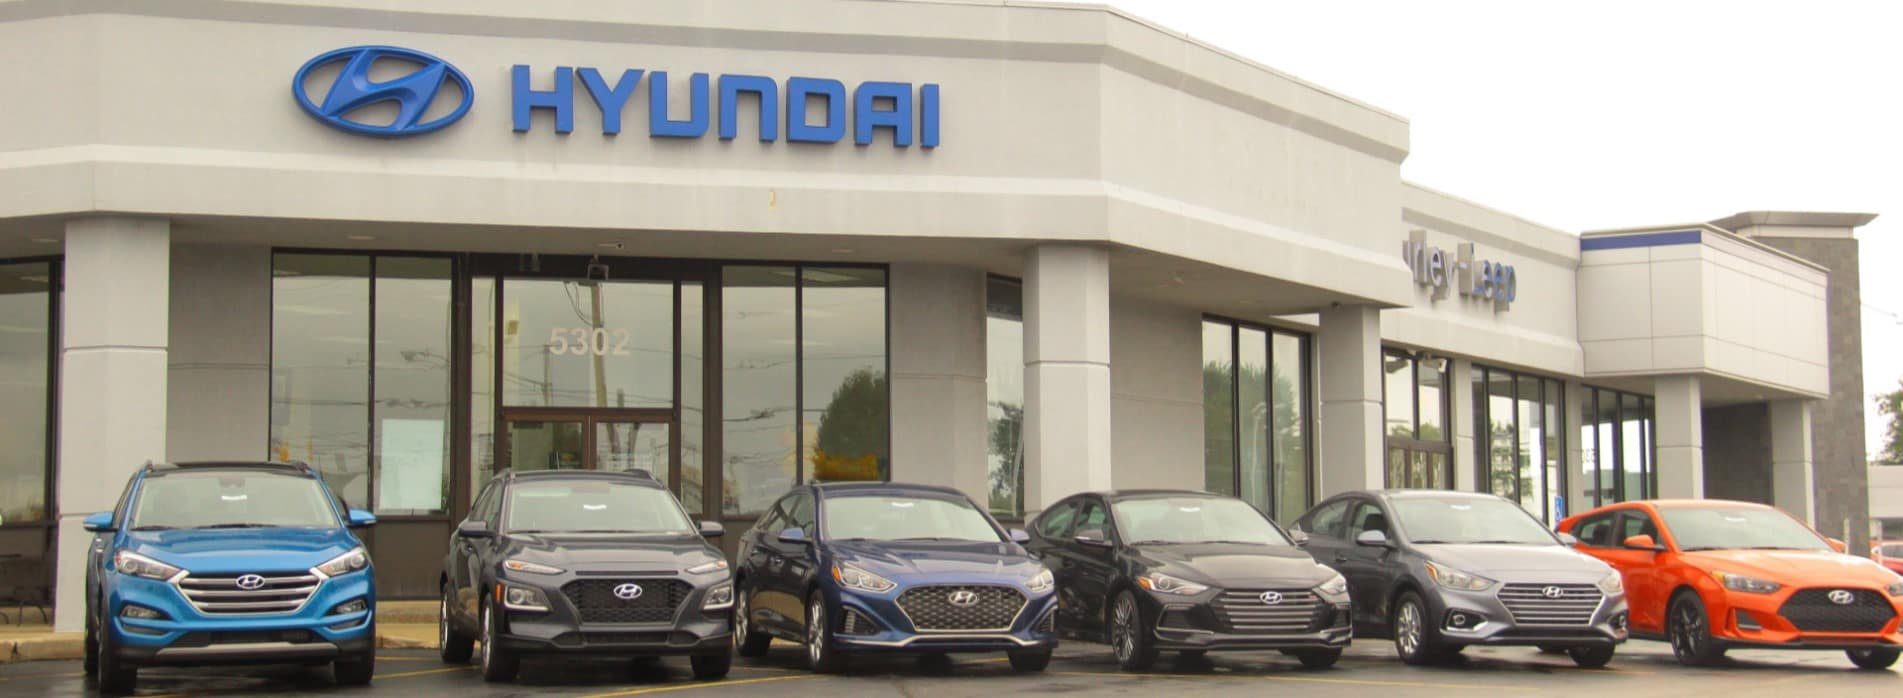 GL Hyundai Store Front